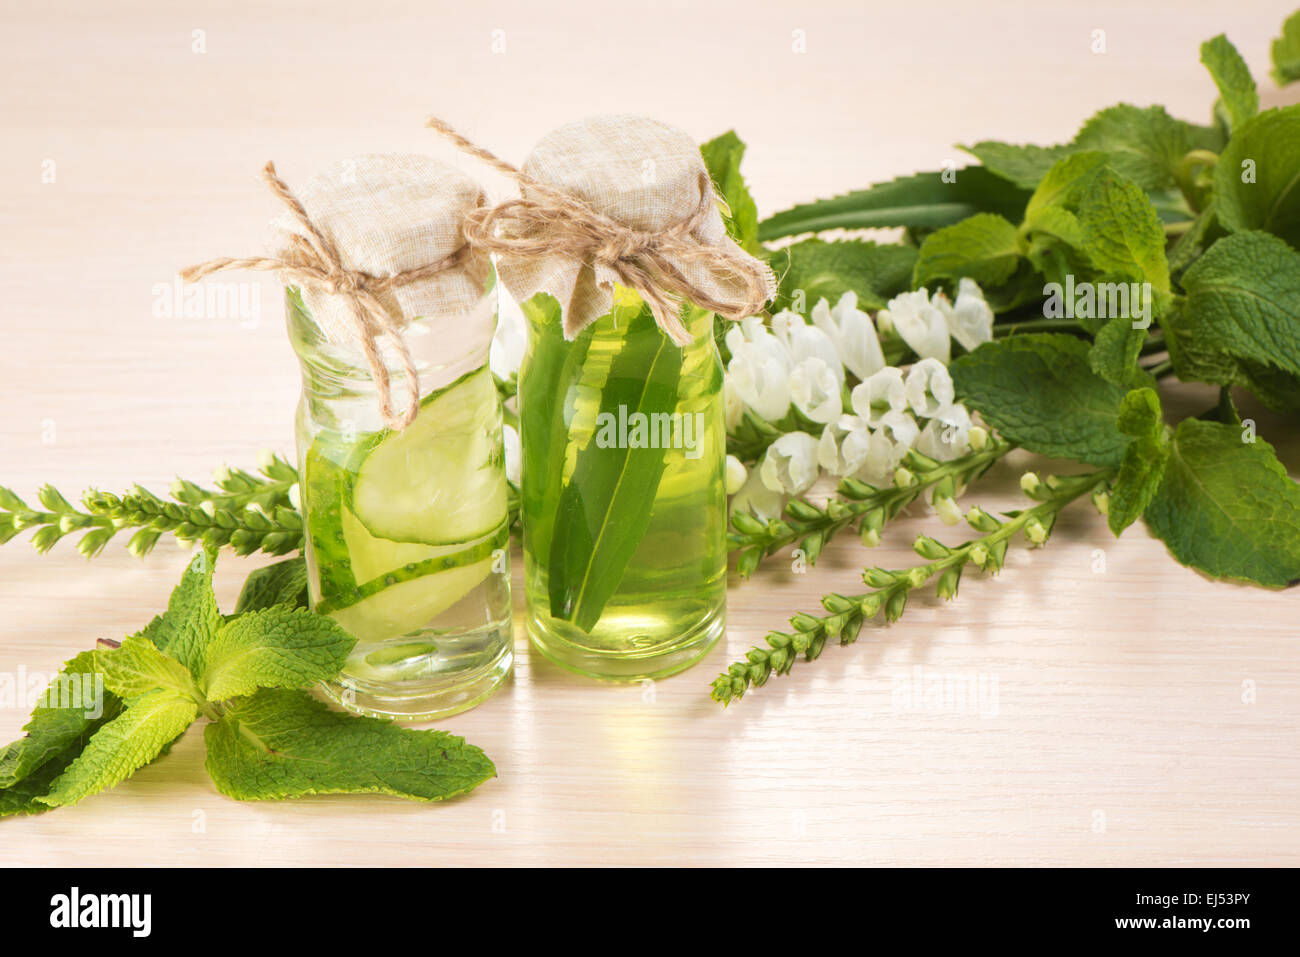 Essential oil and white flowers for spa stock photo 80018035 alamy essential oil and white flowers for spa mightylinksfo